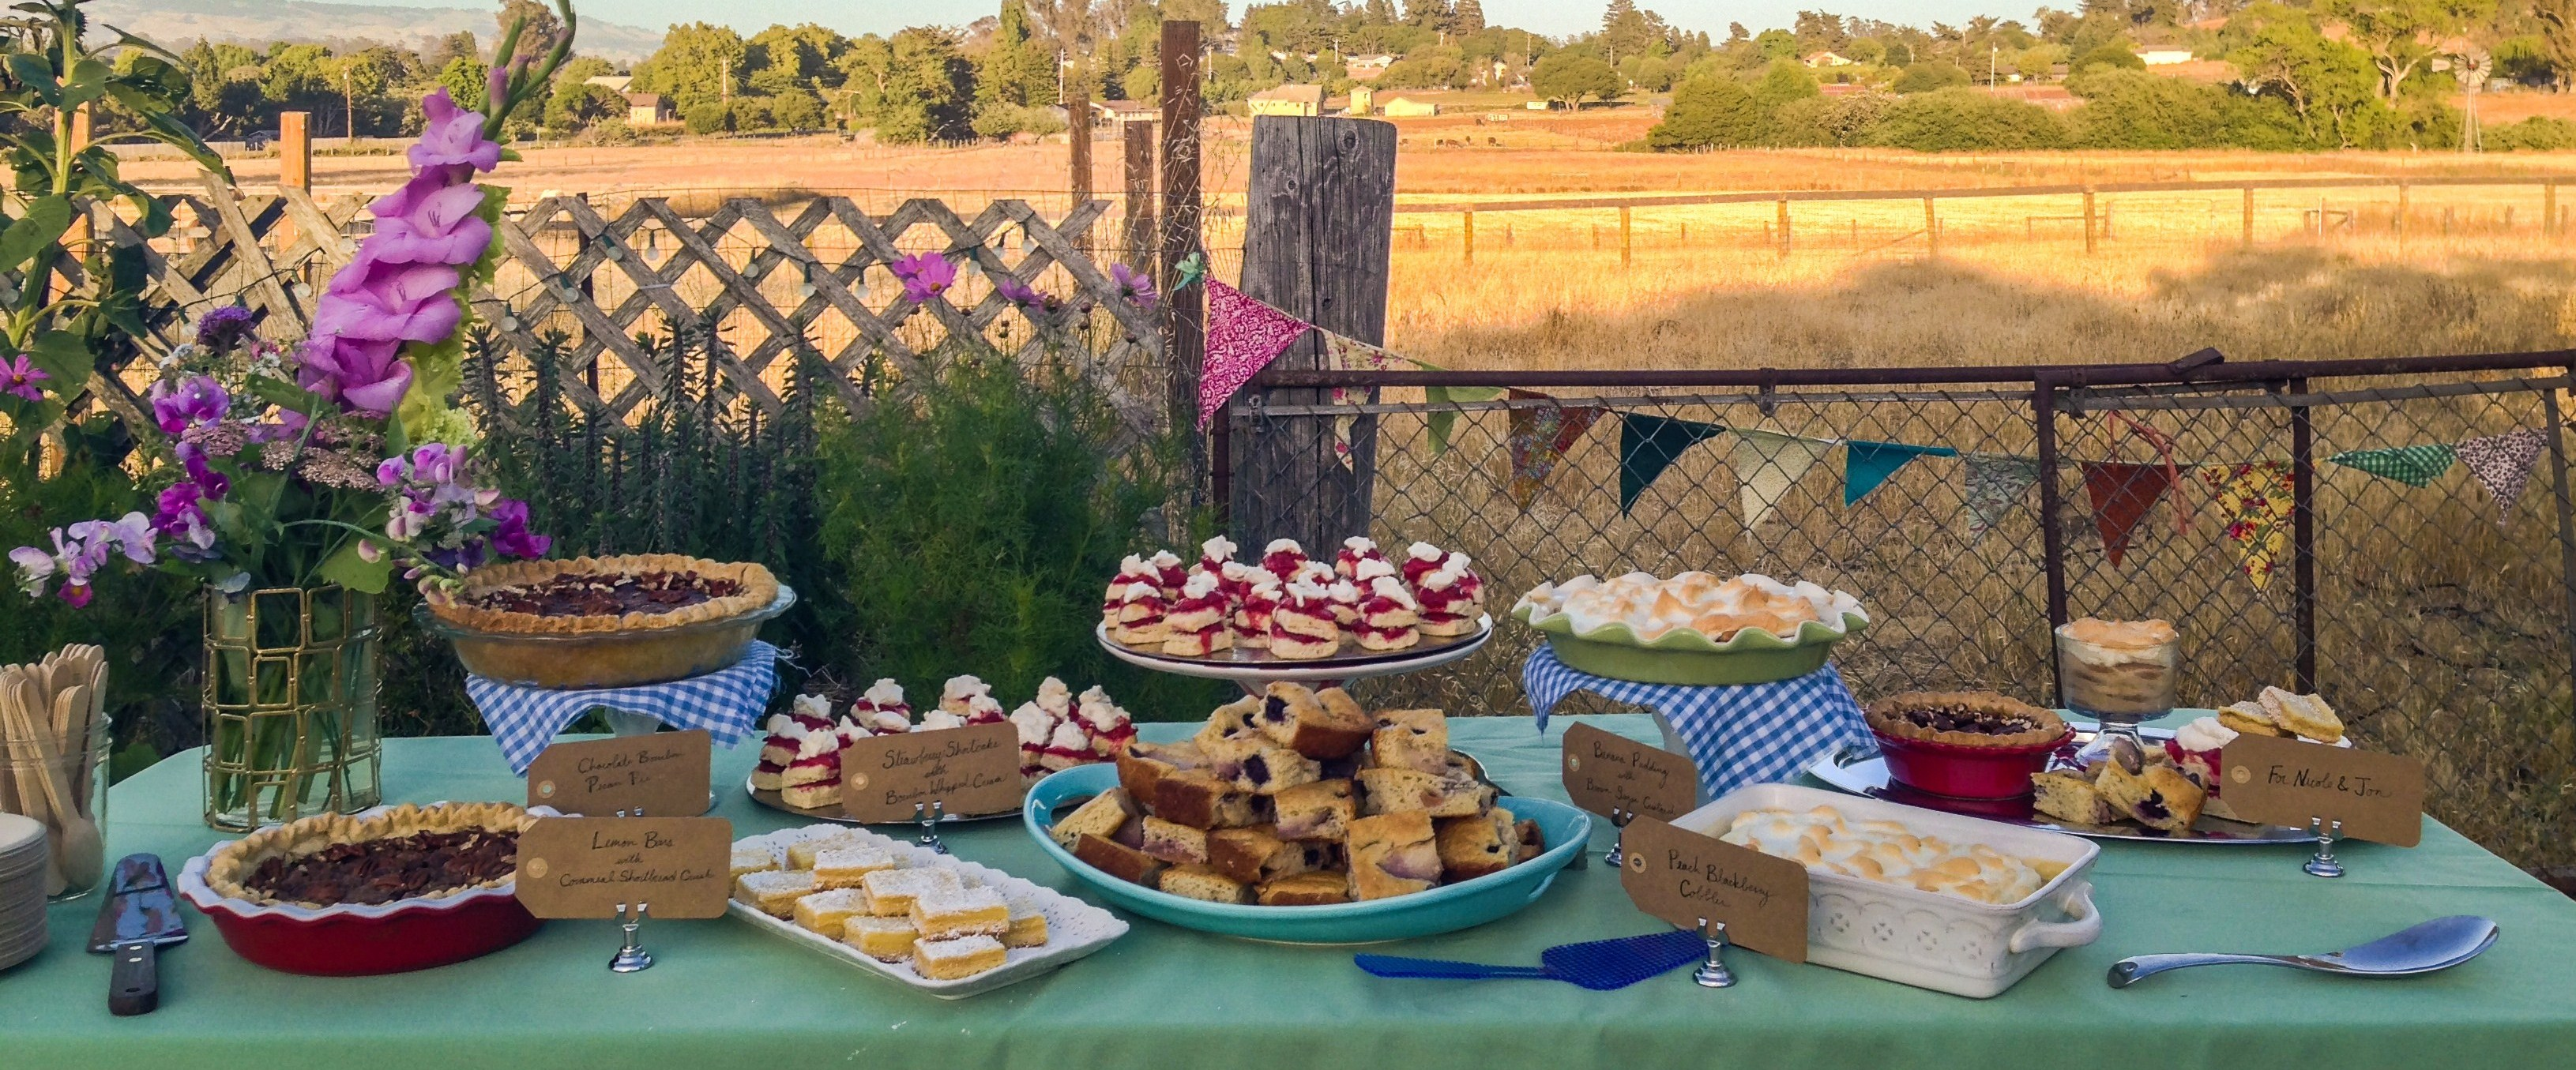 Drums & Crumbs Wedding Dessert Bar